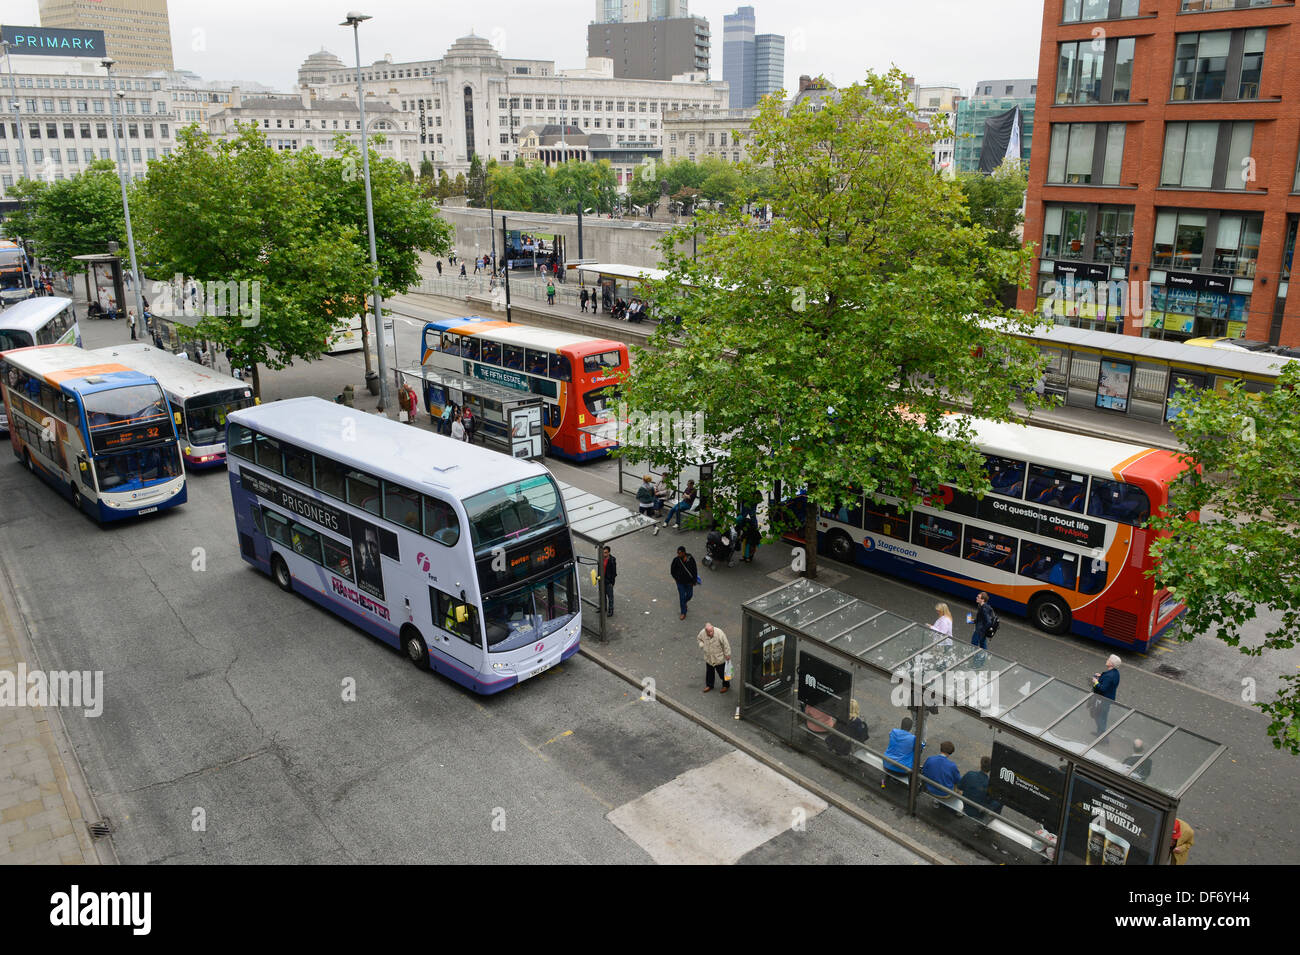 A high view of the Piccadilly Gardens bus station in central Manchester. - Stock Image